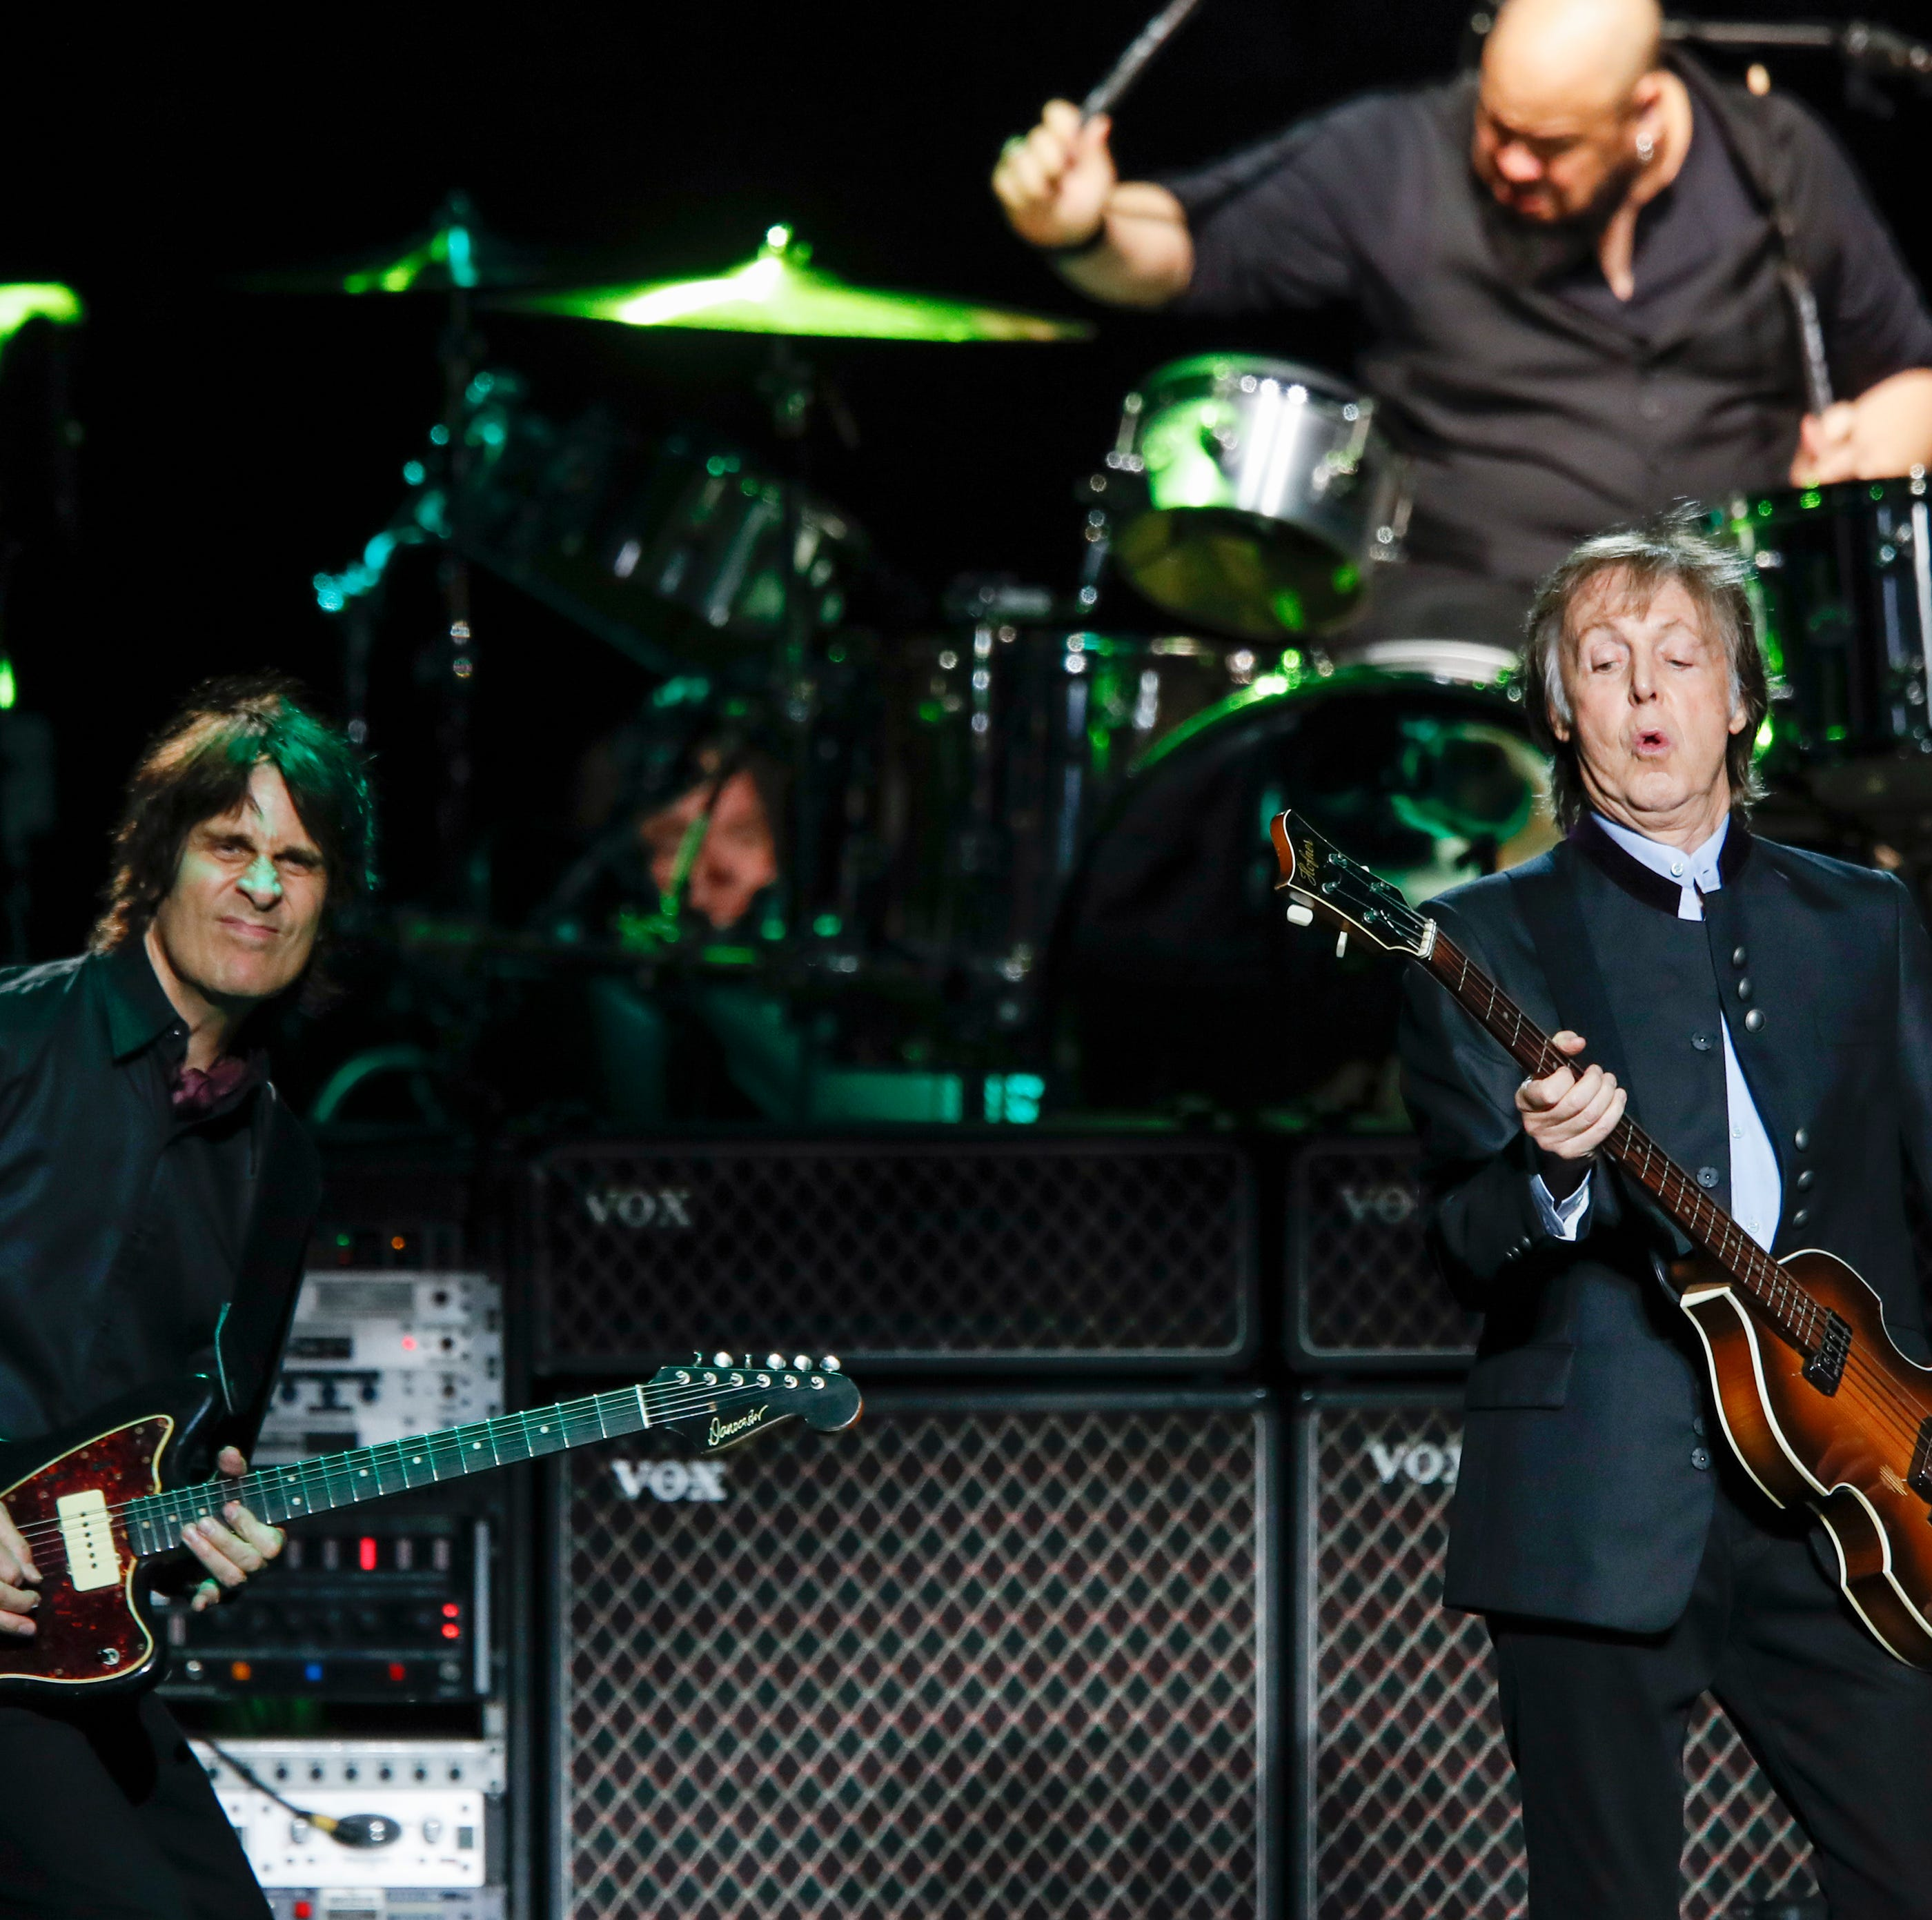 Tickets for Paul McCartney at Lambeau start at $59, first pre-sale down to single seats